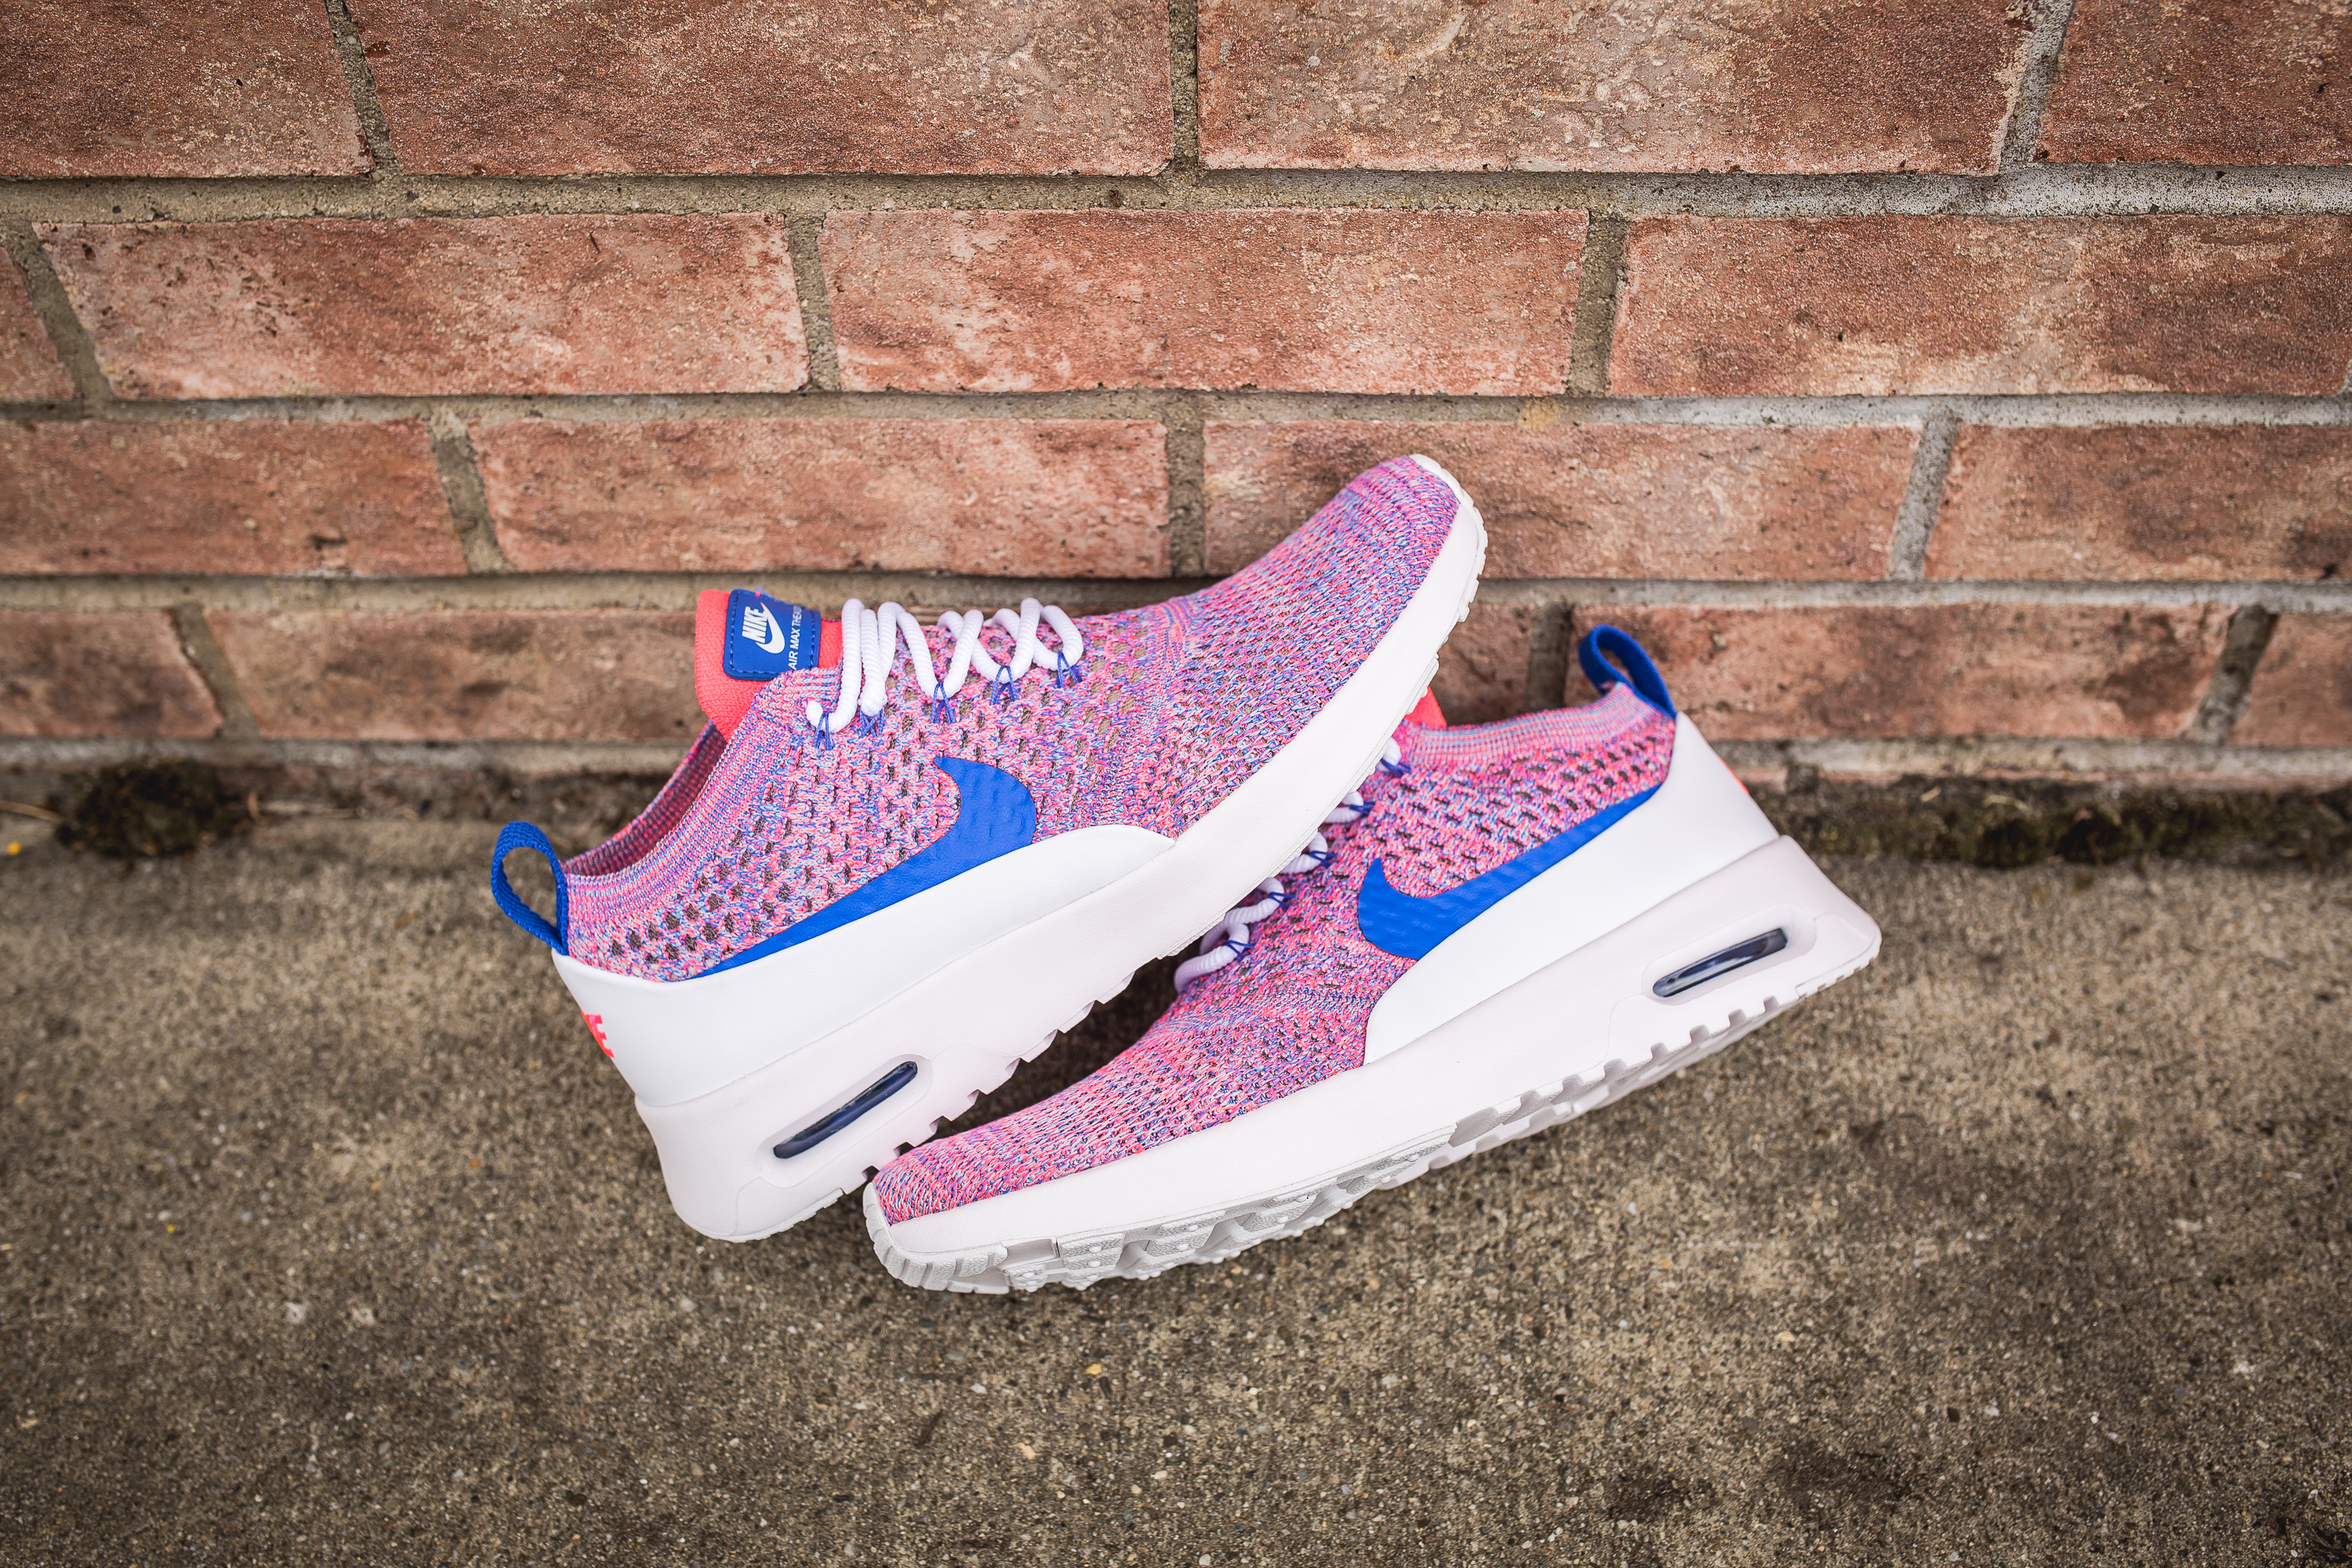 best sneakers e9a65 788bd ... 90 ultra 2.0 flyknit shoes black racer blue hyper violet shopping nike  wmns air max thea ultra fk white medium blue racer pink 150 68337 a4415 ...